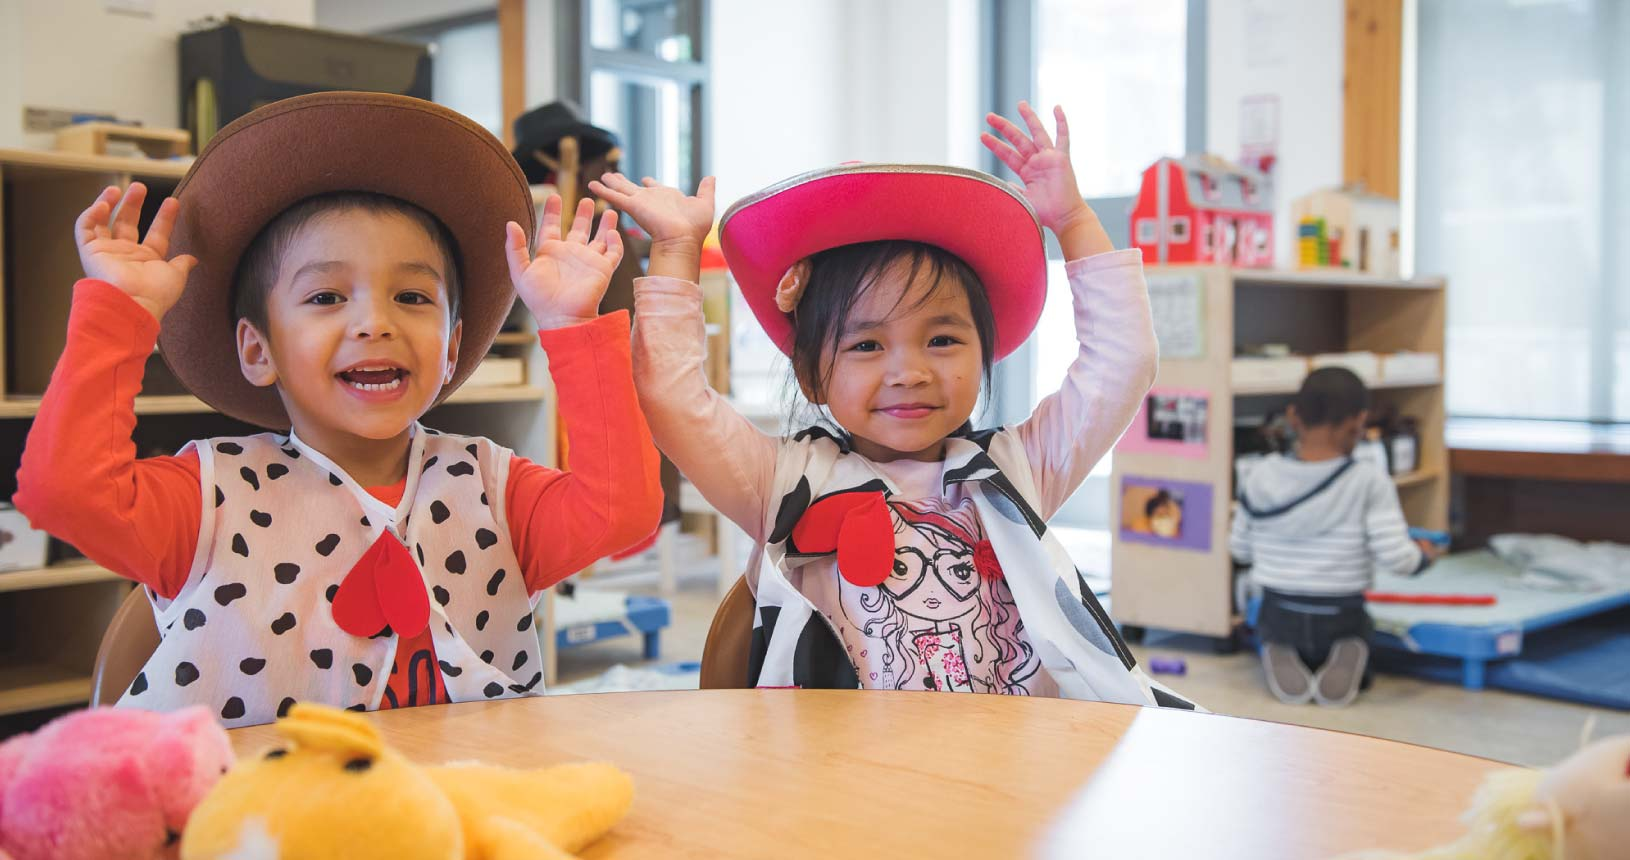 A young boy and girl, wearing cowboy hats, are having fun with their hands in the air